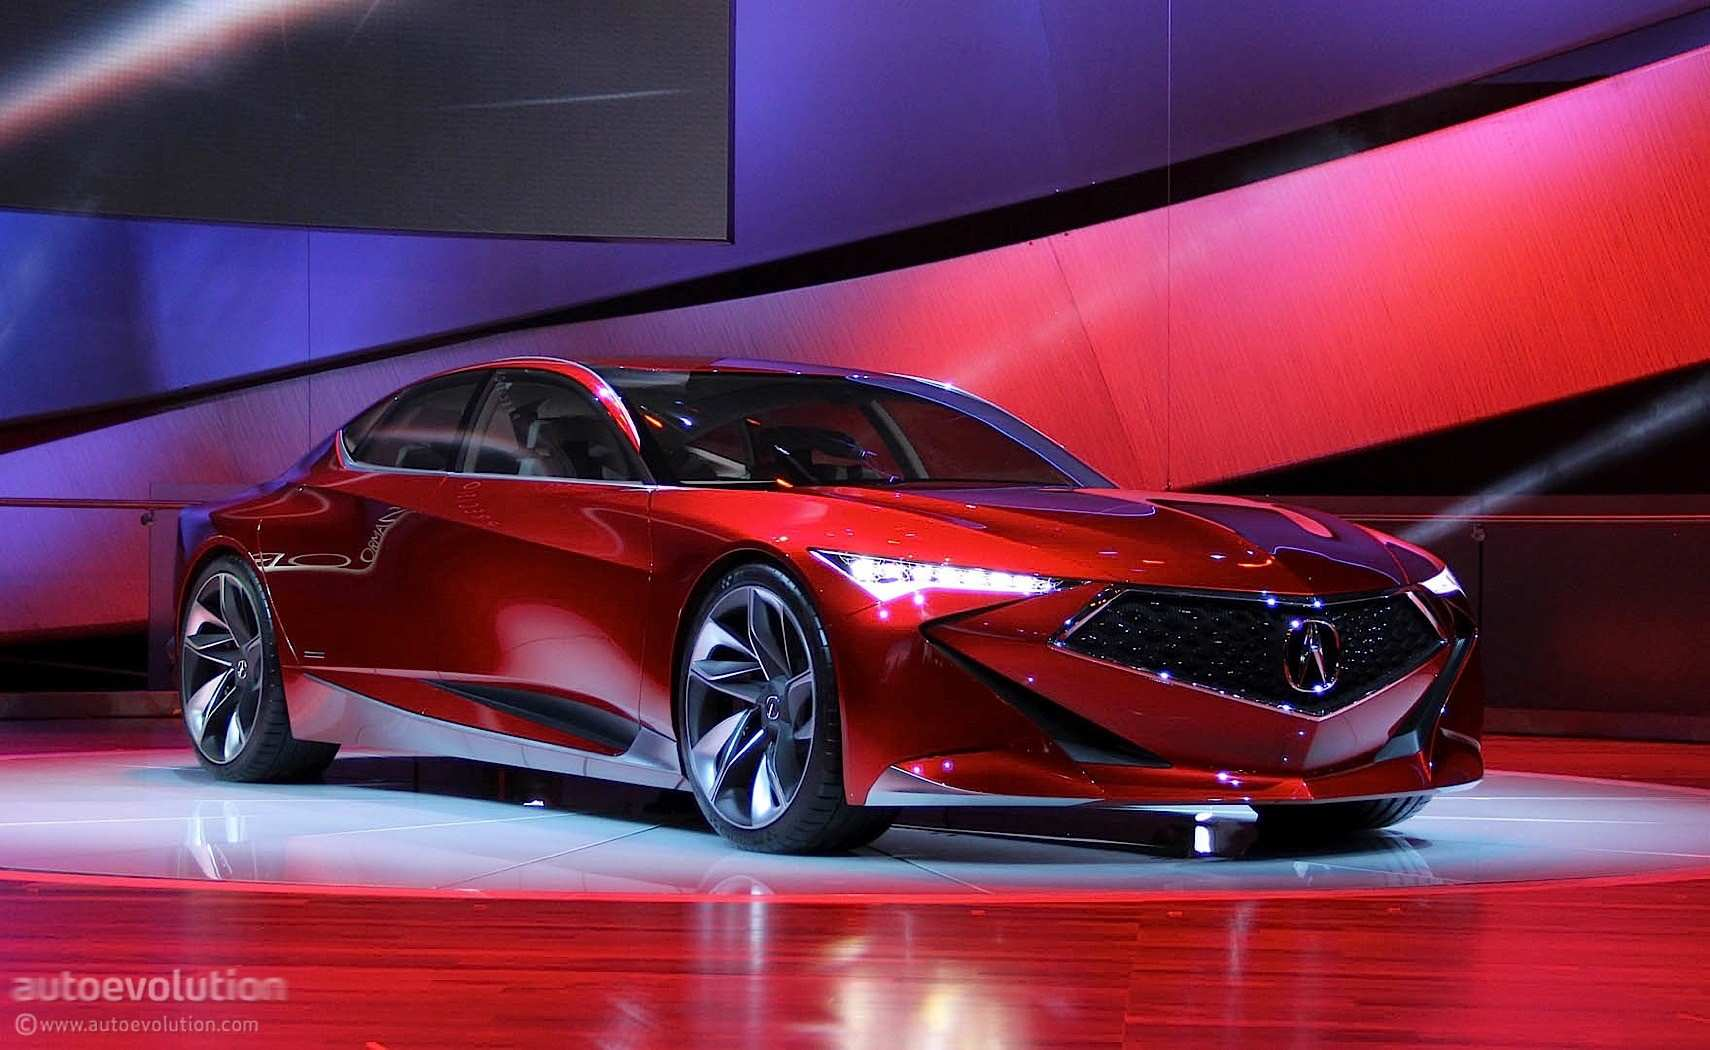 66 All New Acura Precision Concept 2020 Price Design And Review